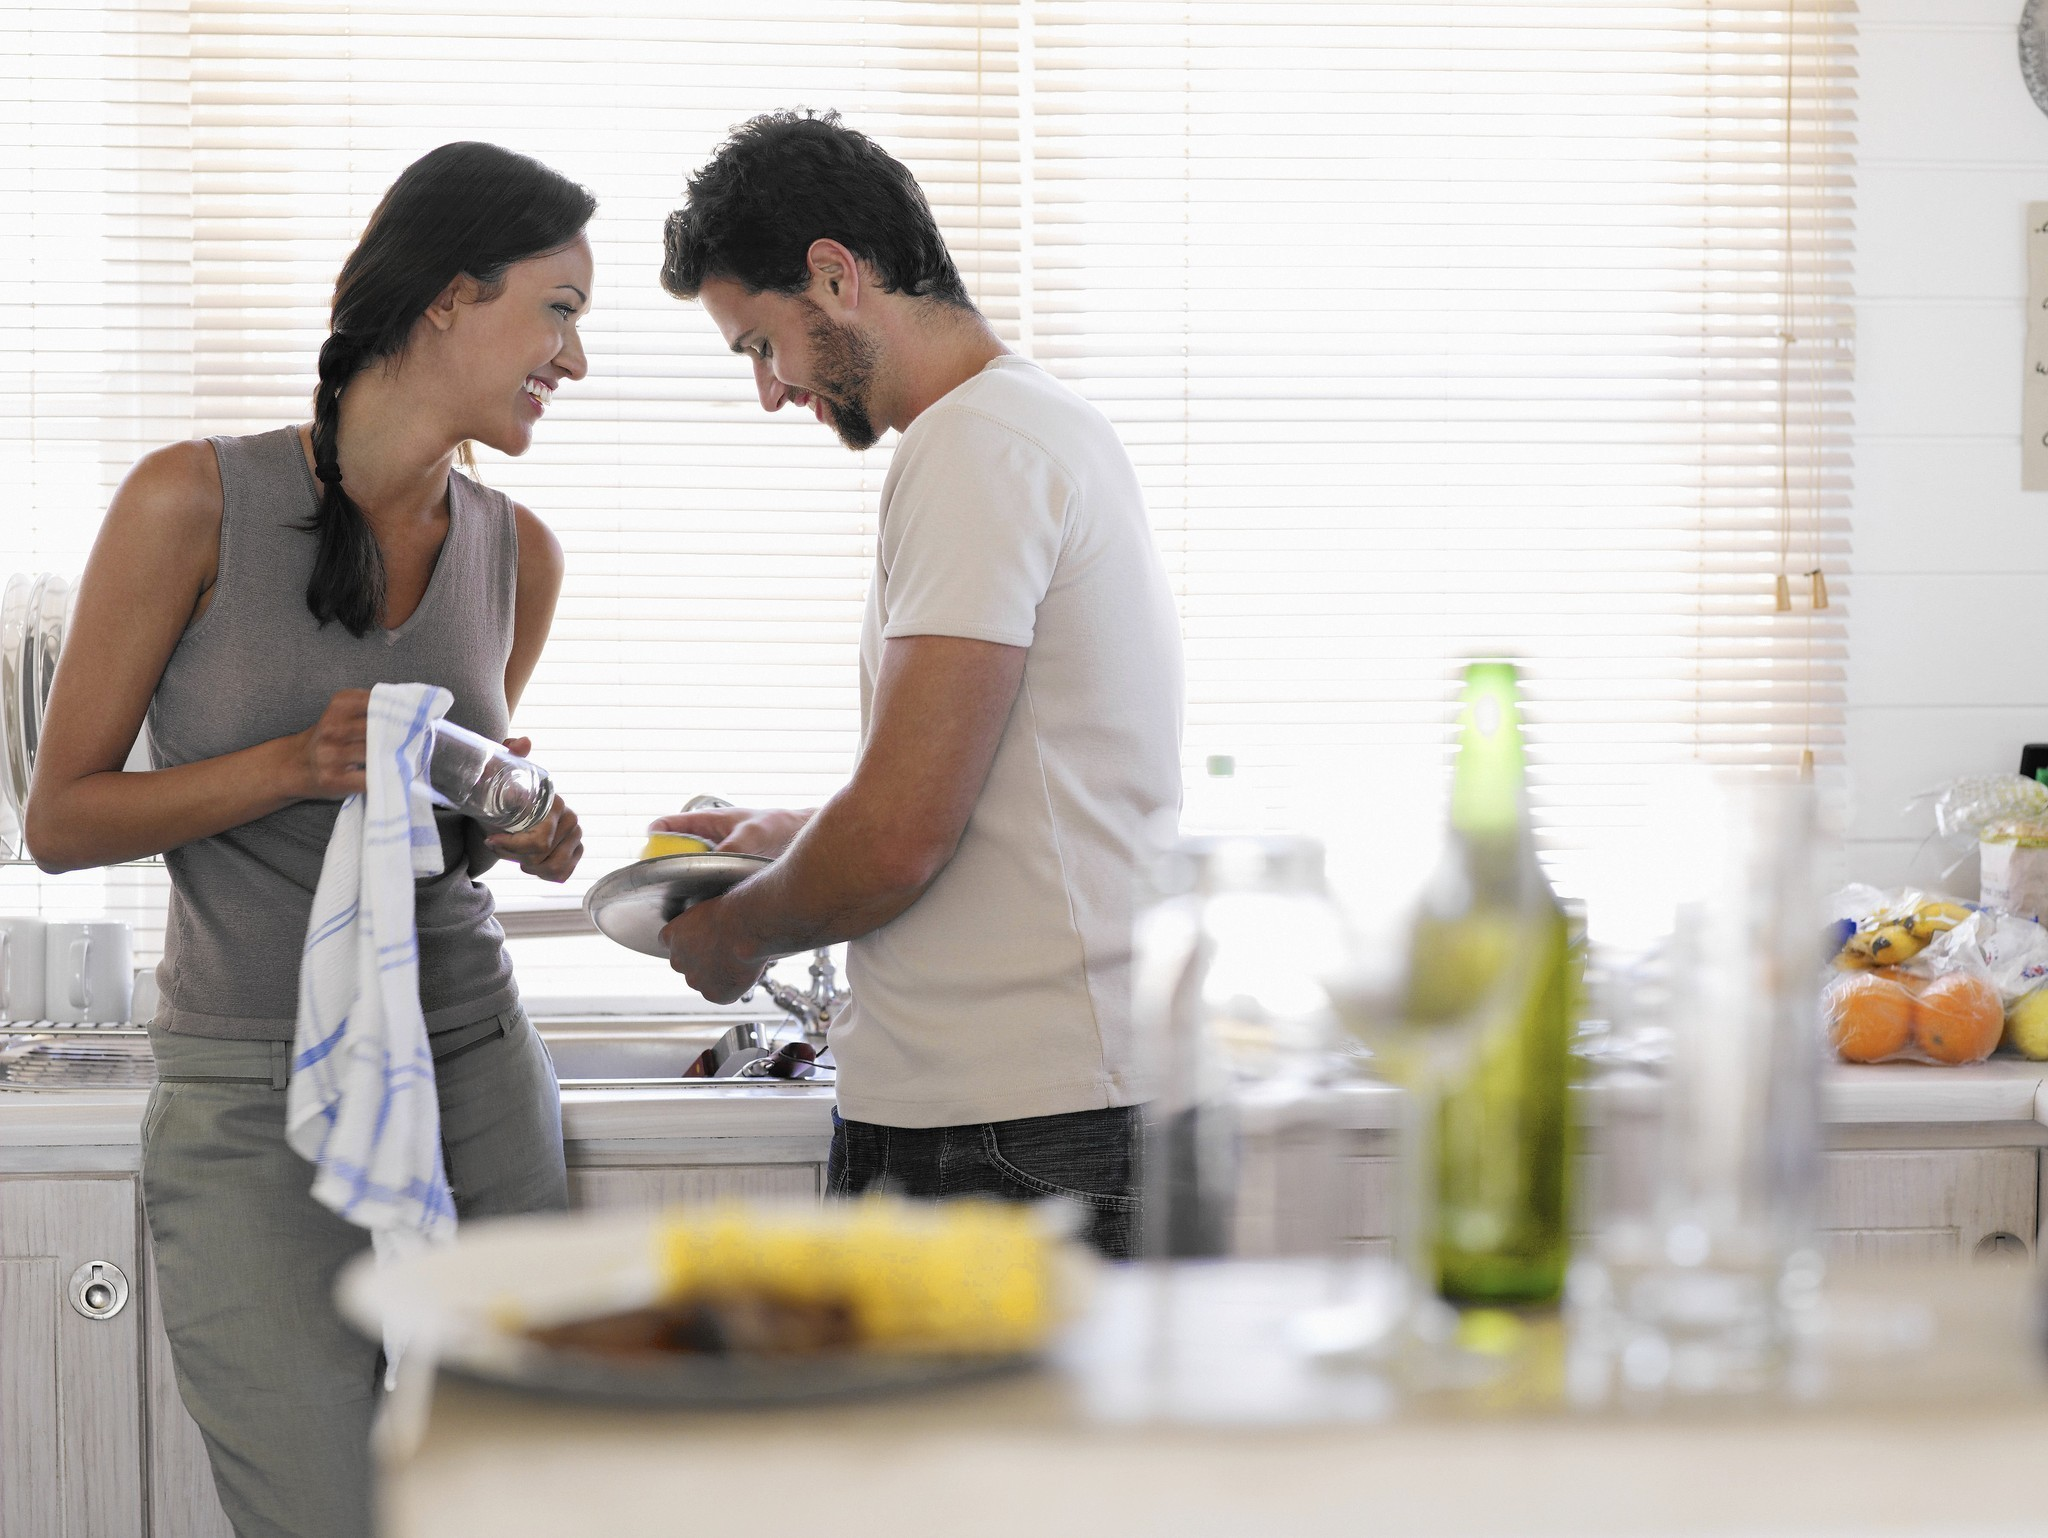 Couples Who Divvy Up Household Chores Have Best Sex Lives